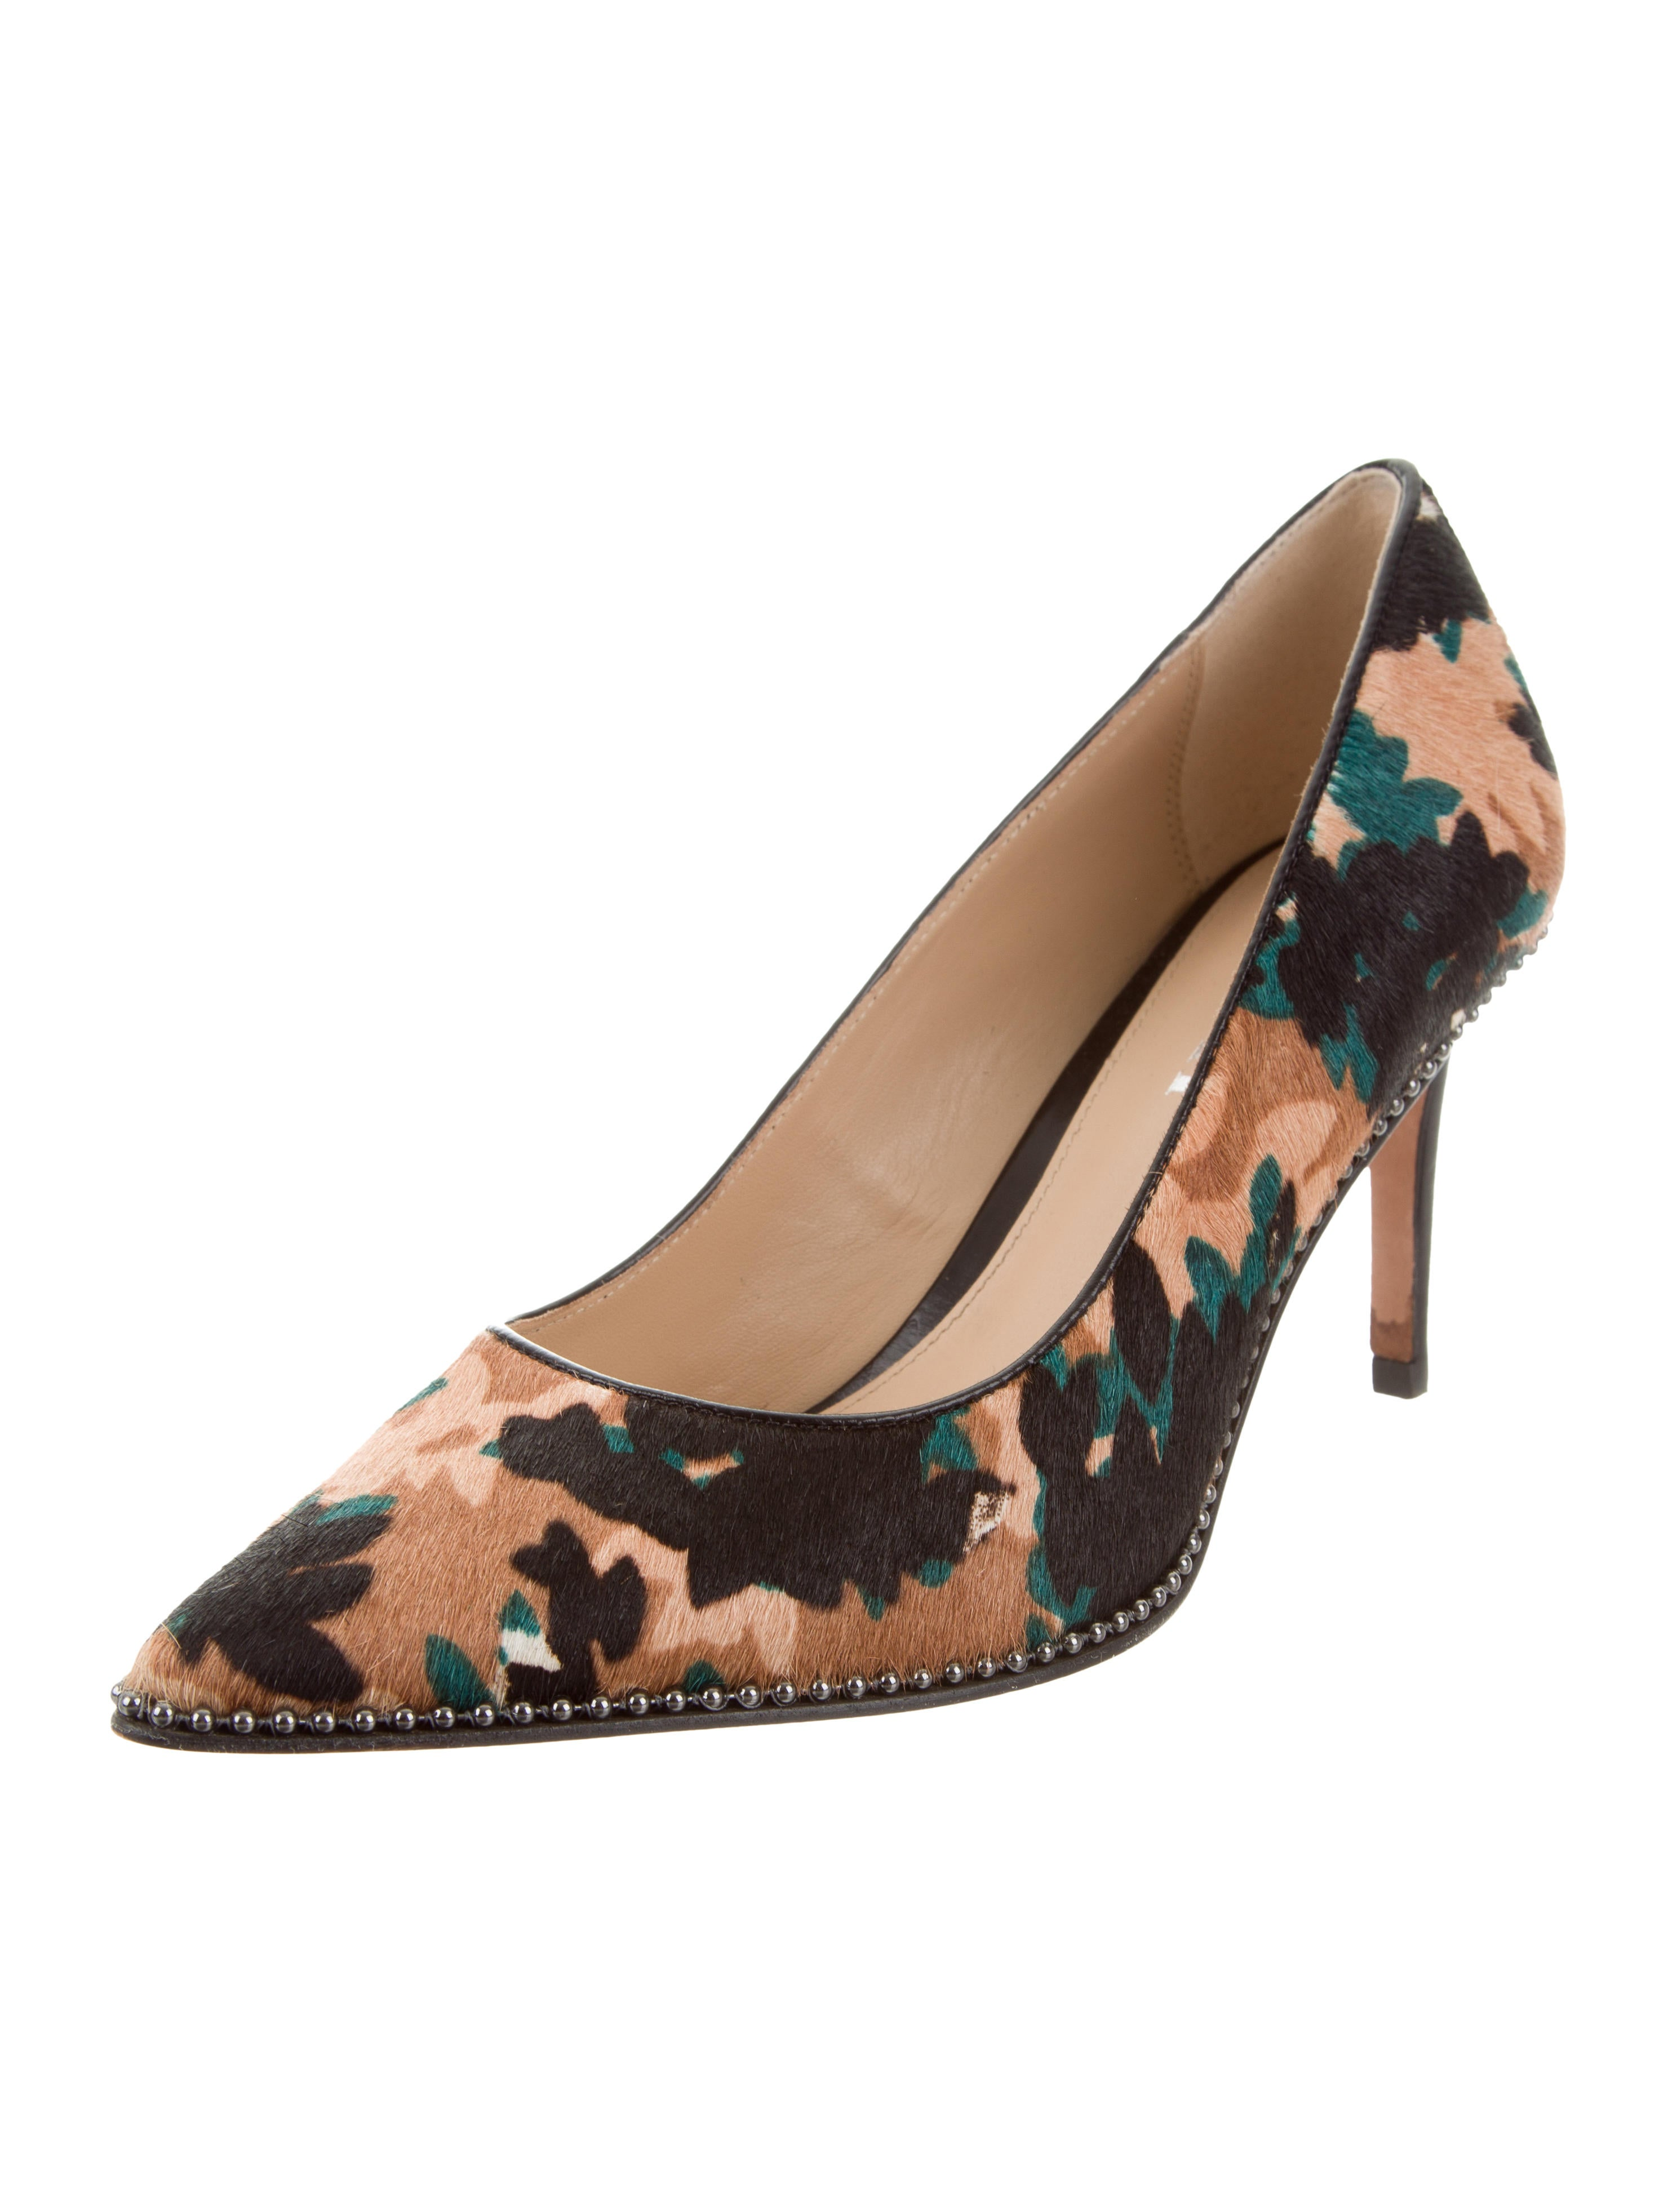 buy cheap choice shipping discount authentic Coach Printed Ponyhair Pumps outlet pay with visa clearance under $60 tsdCiWH1kK